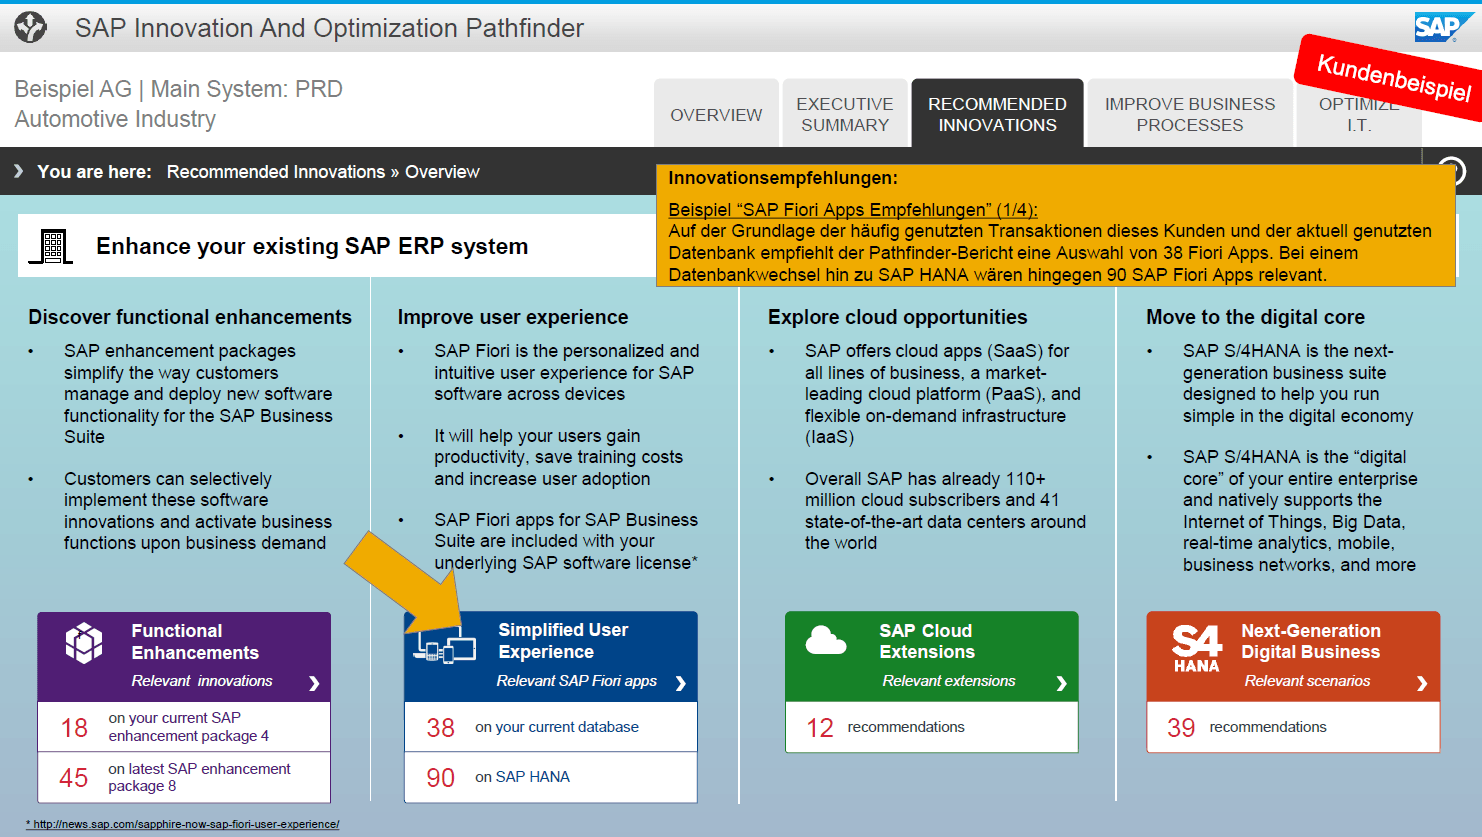 Blog_Screen_SAP Pathfinder_Innovationen 1